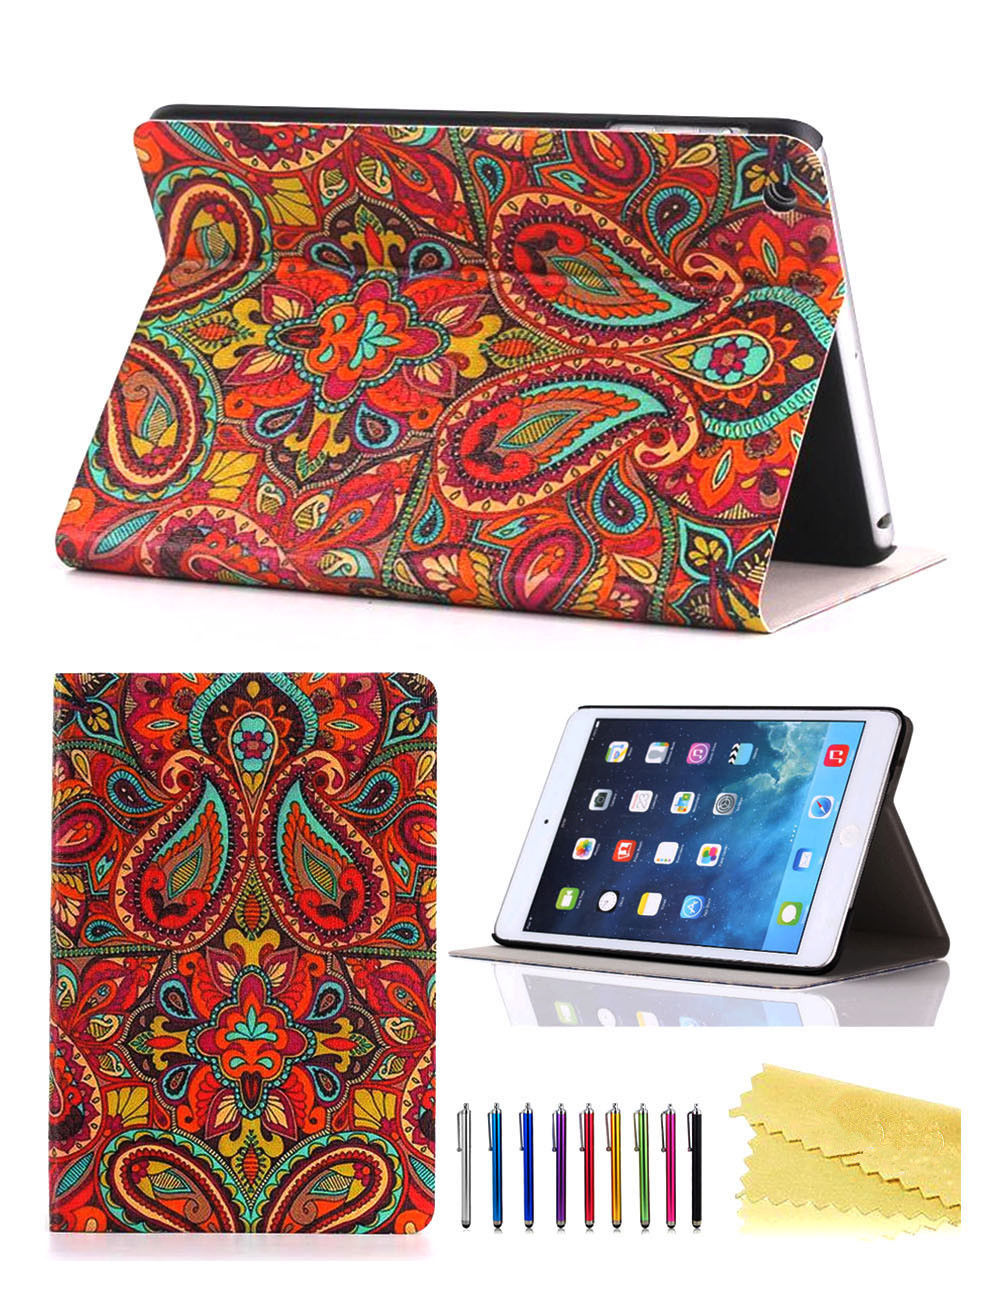 Cute Magnetic Leather Stand Cover Case For iPad 2 3 4 5th ... |Cute Ipad Cases